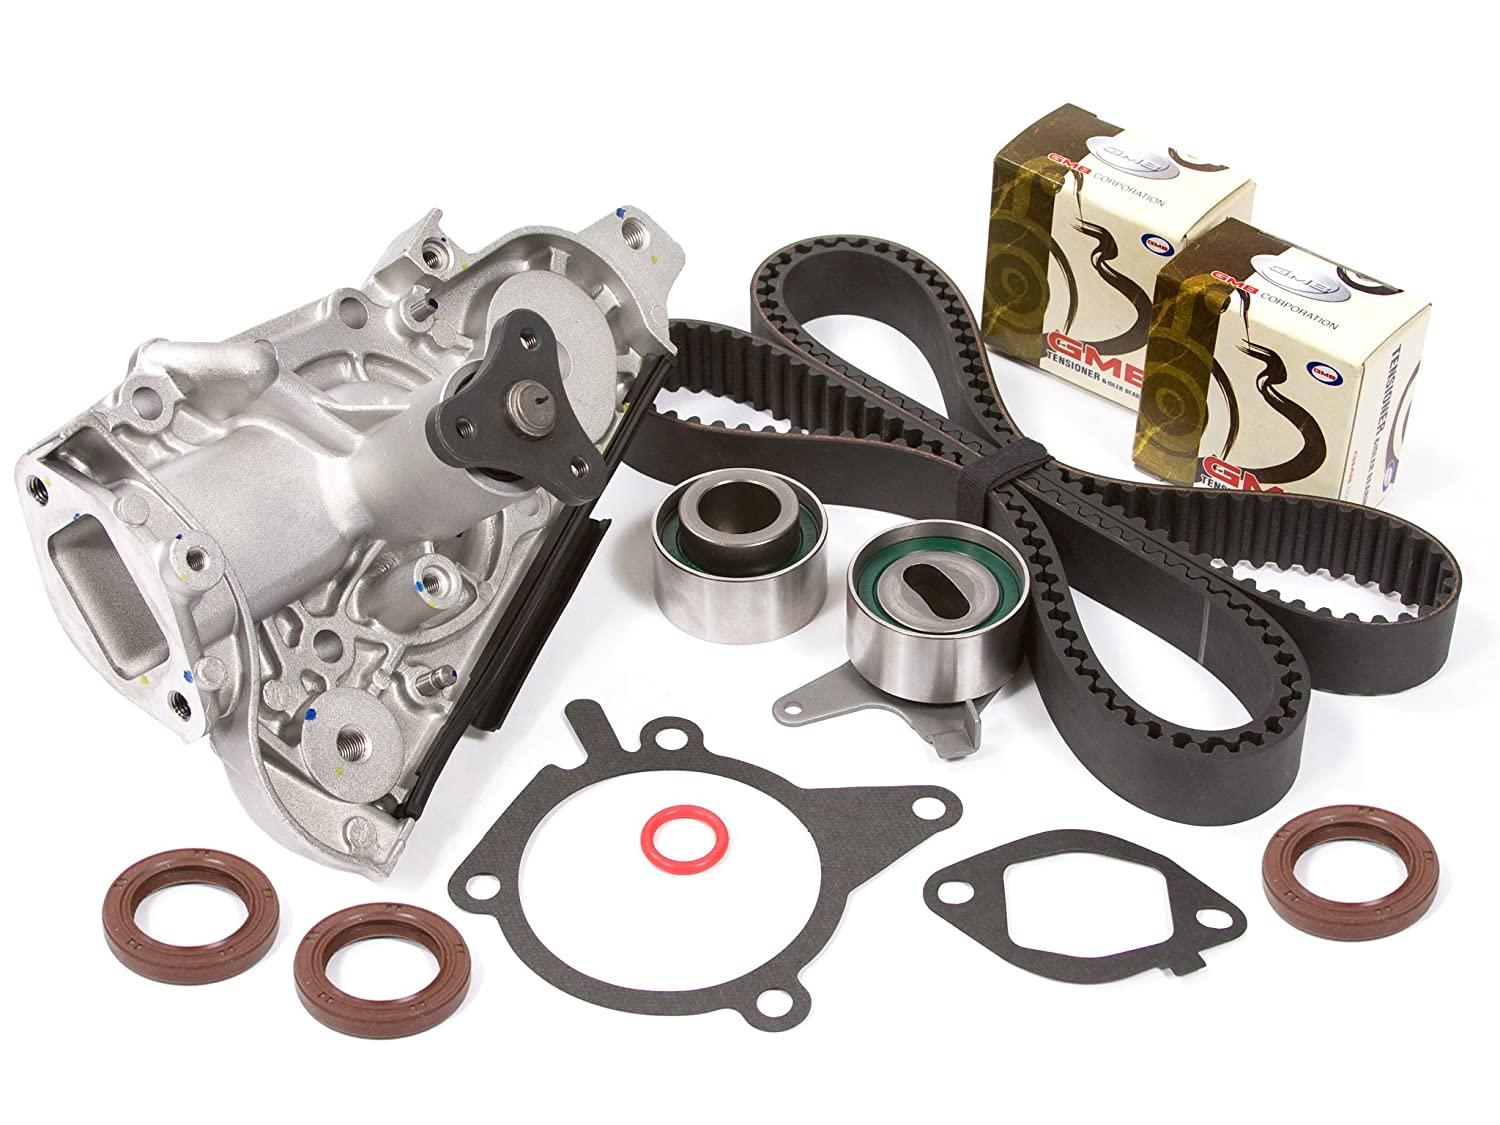 Amazon.com: Evergreen TBK179WPT2 94-05 Mazda Miata MX-3 Protege Kia Sephia  1.6 1.8 DOHC 16V B6 BP Timing Belt Water Pump Kit: Automotive